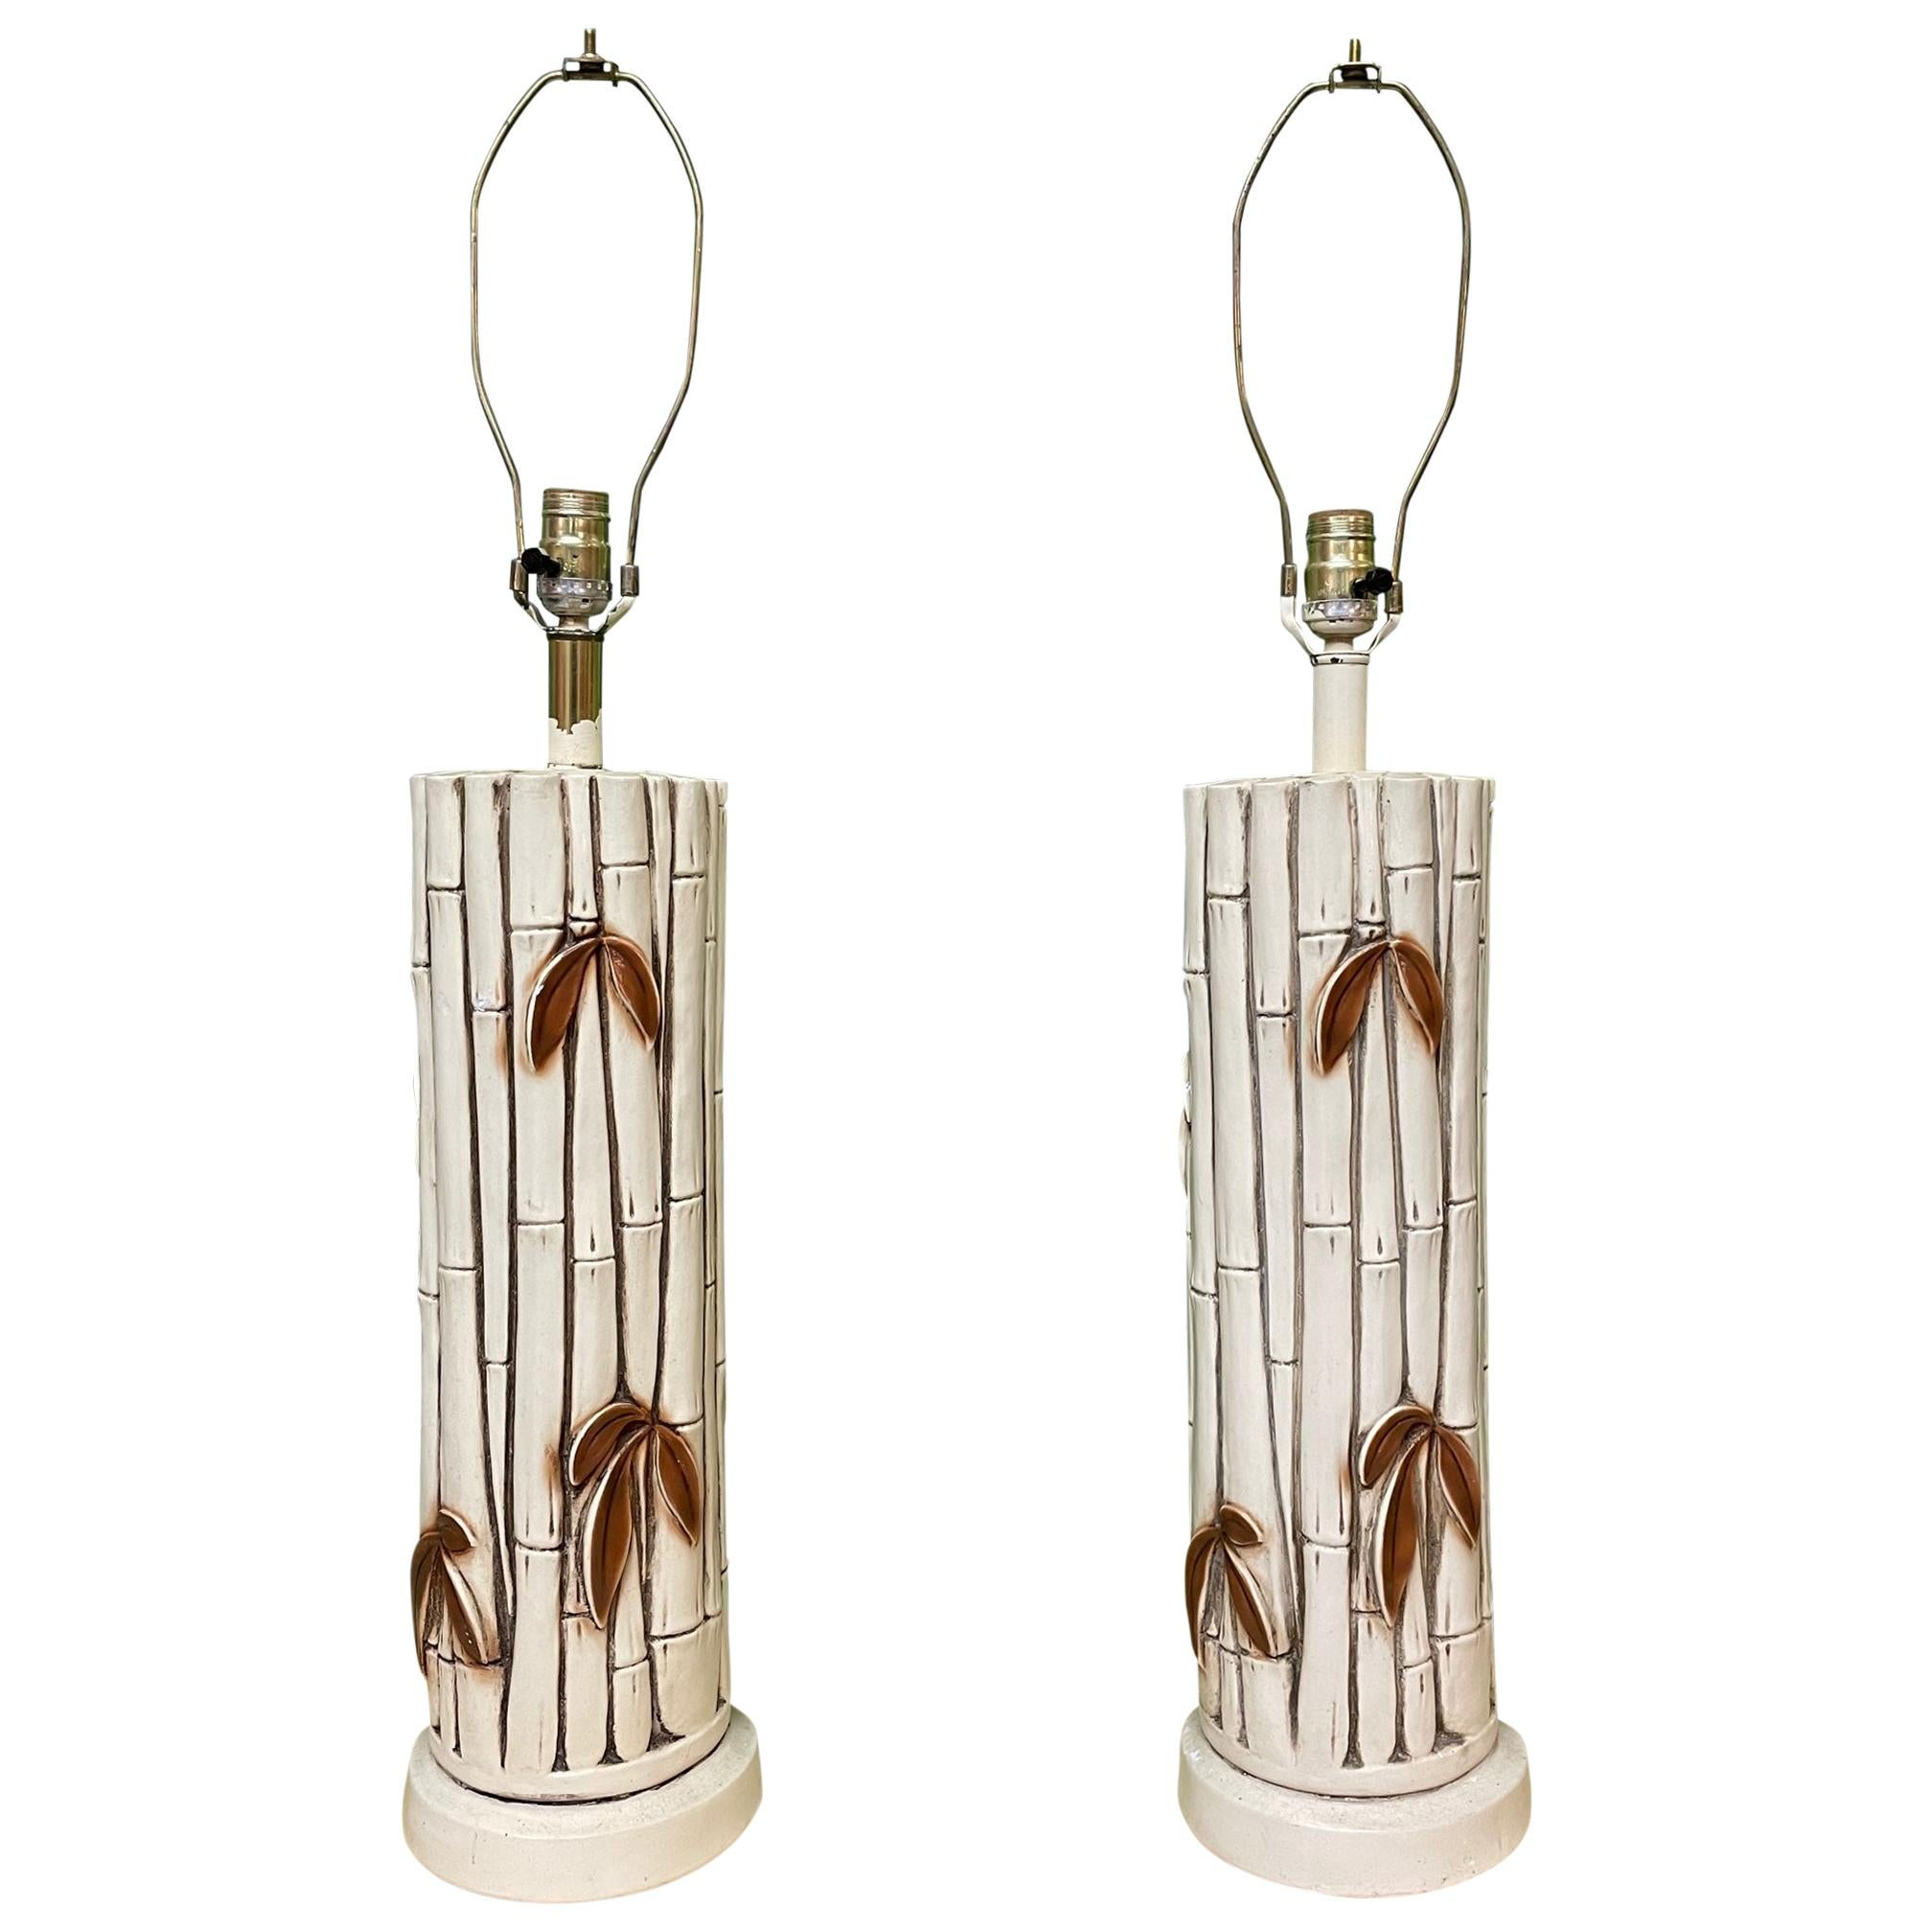 Midcentury Faux Bamboo Table Lamps, Pair